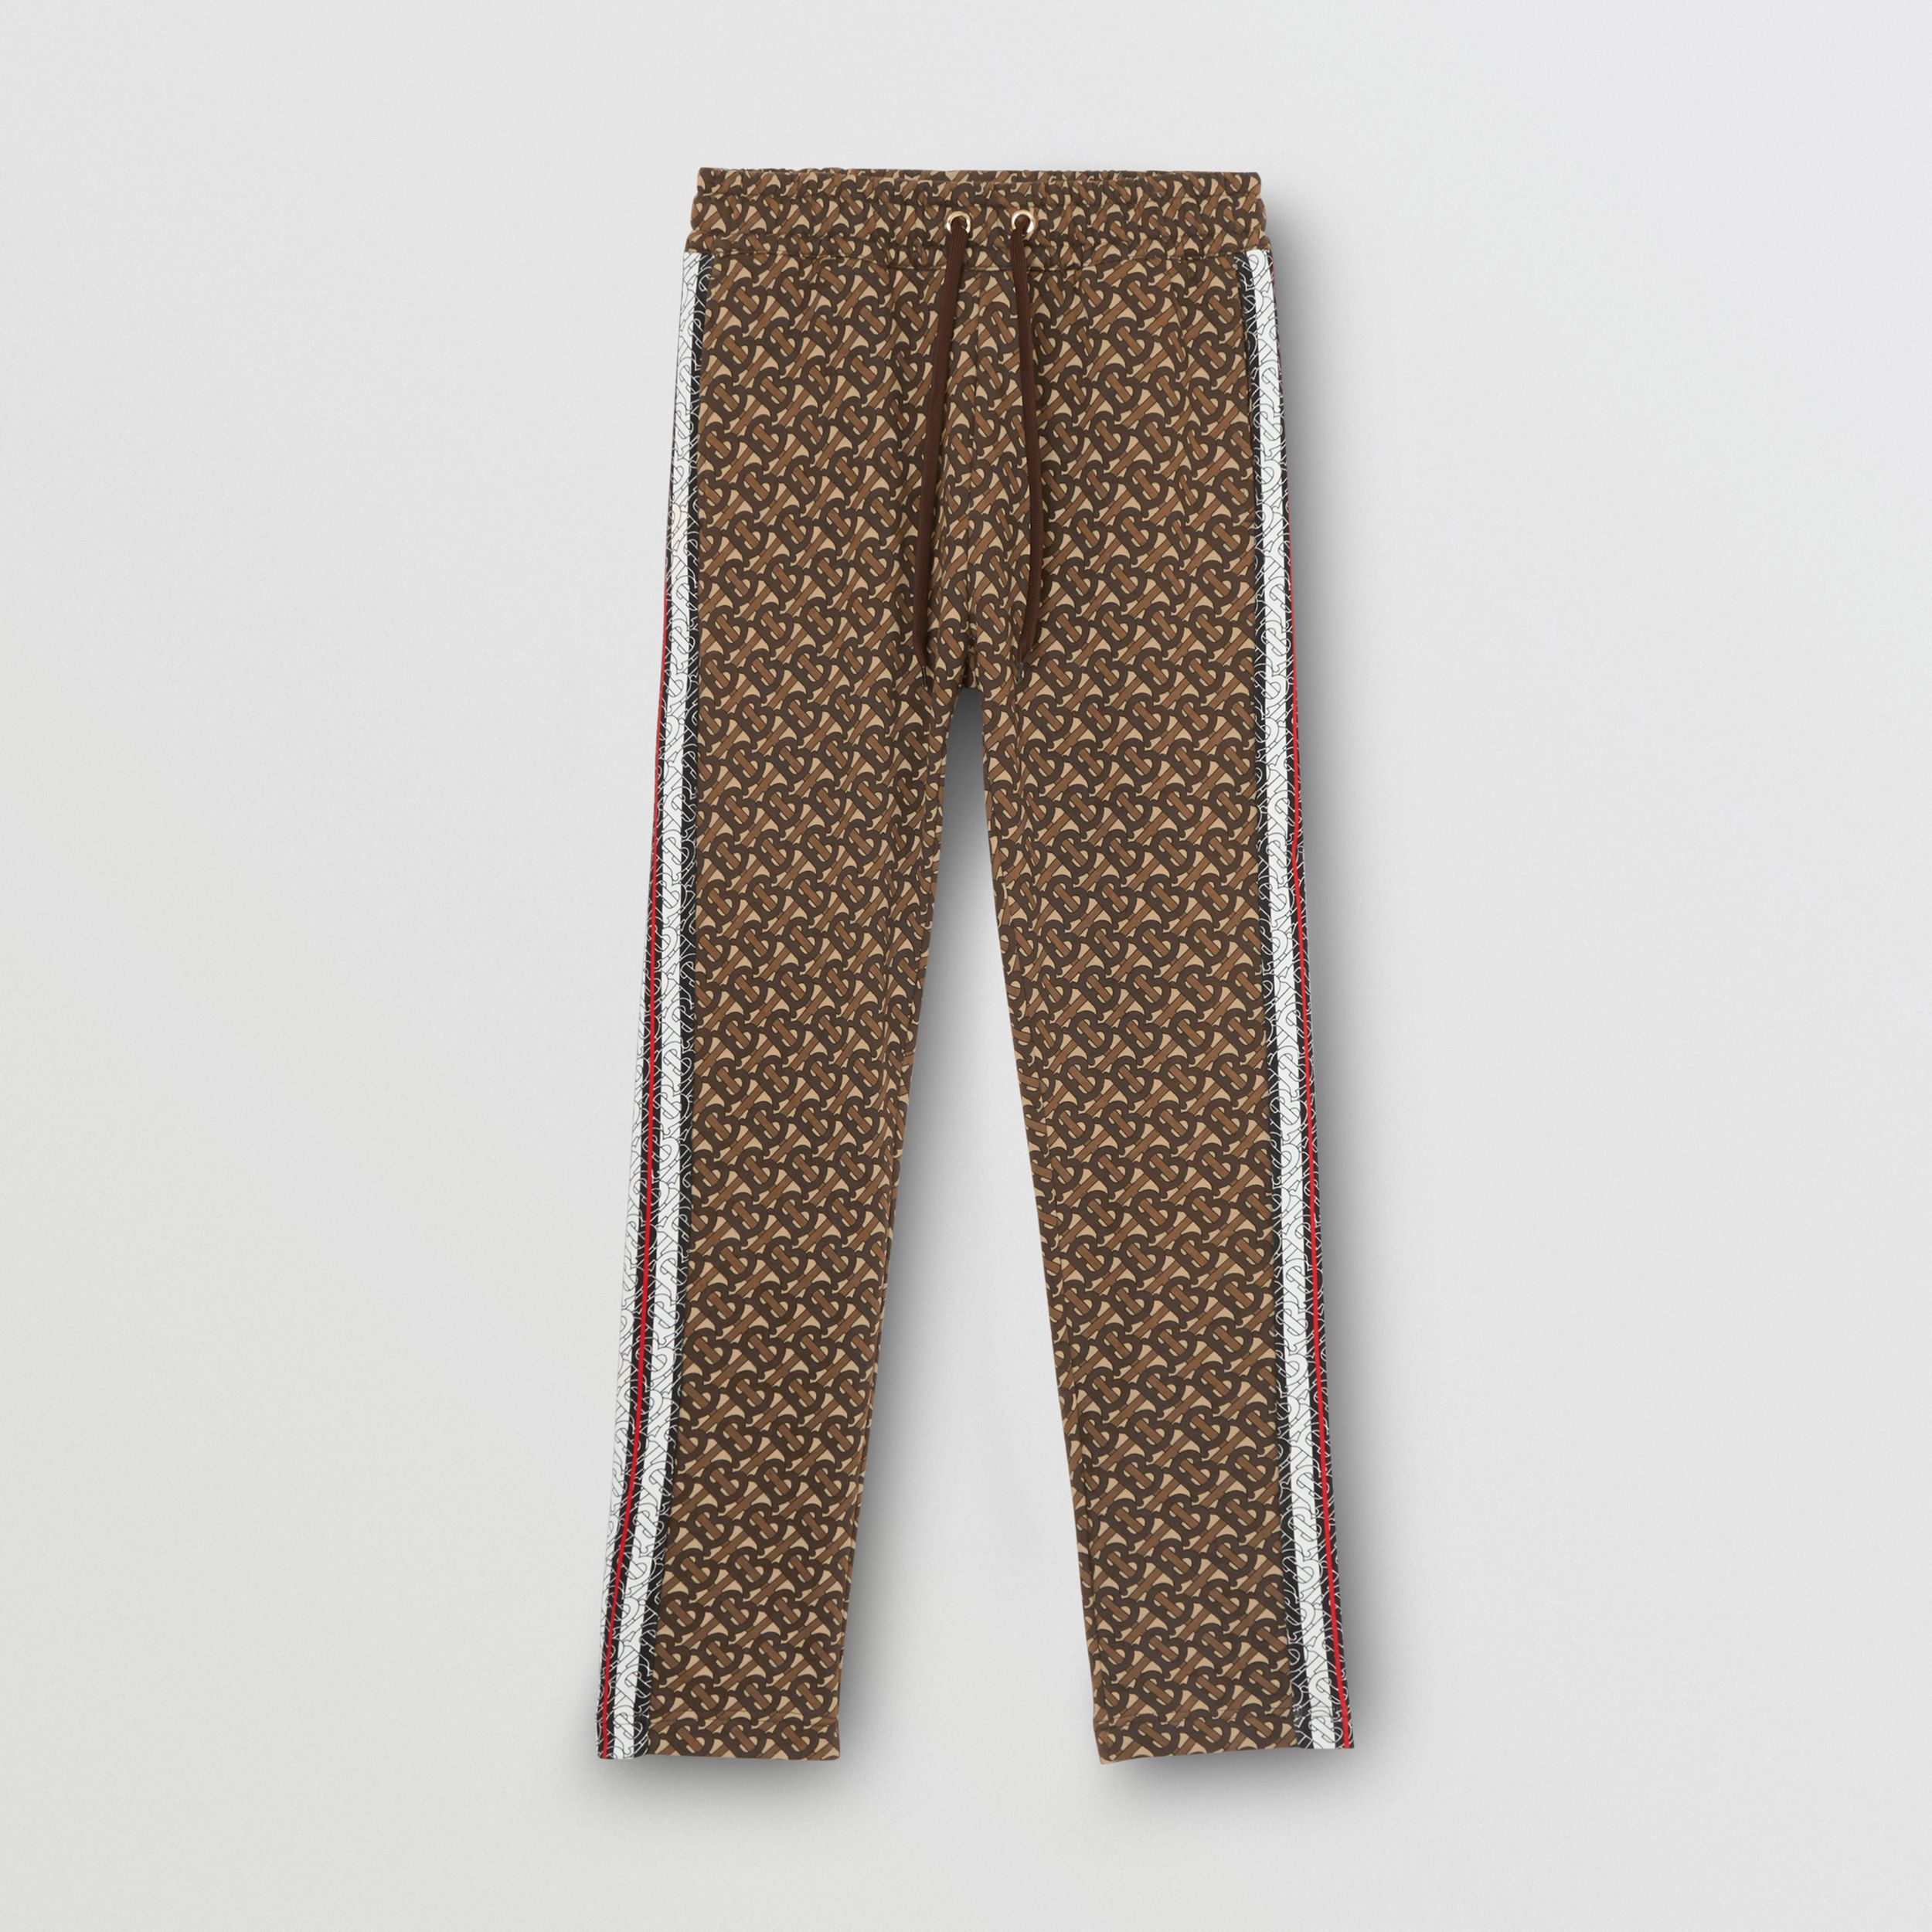 Monogram Stripe Print Cotton Jogging Pants in Bridle Brown - Women | Burberry Australia - 3